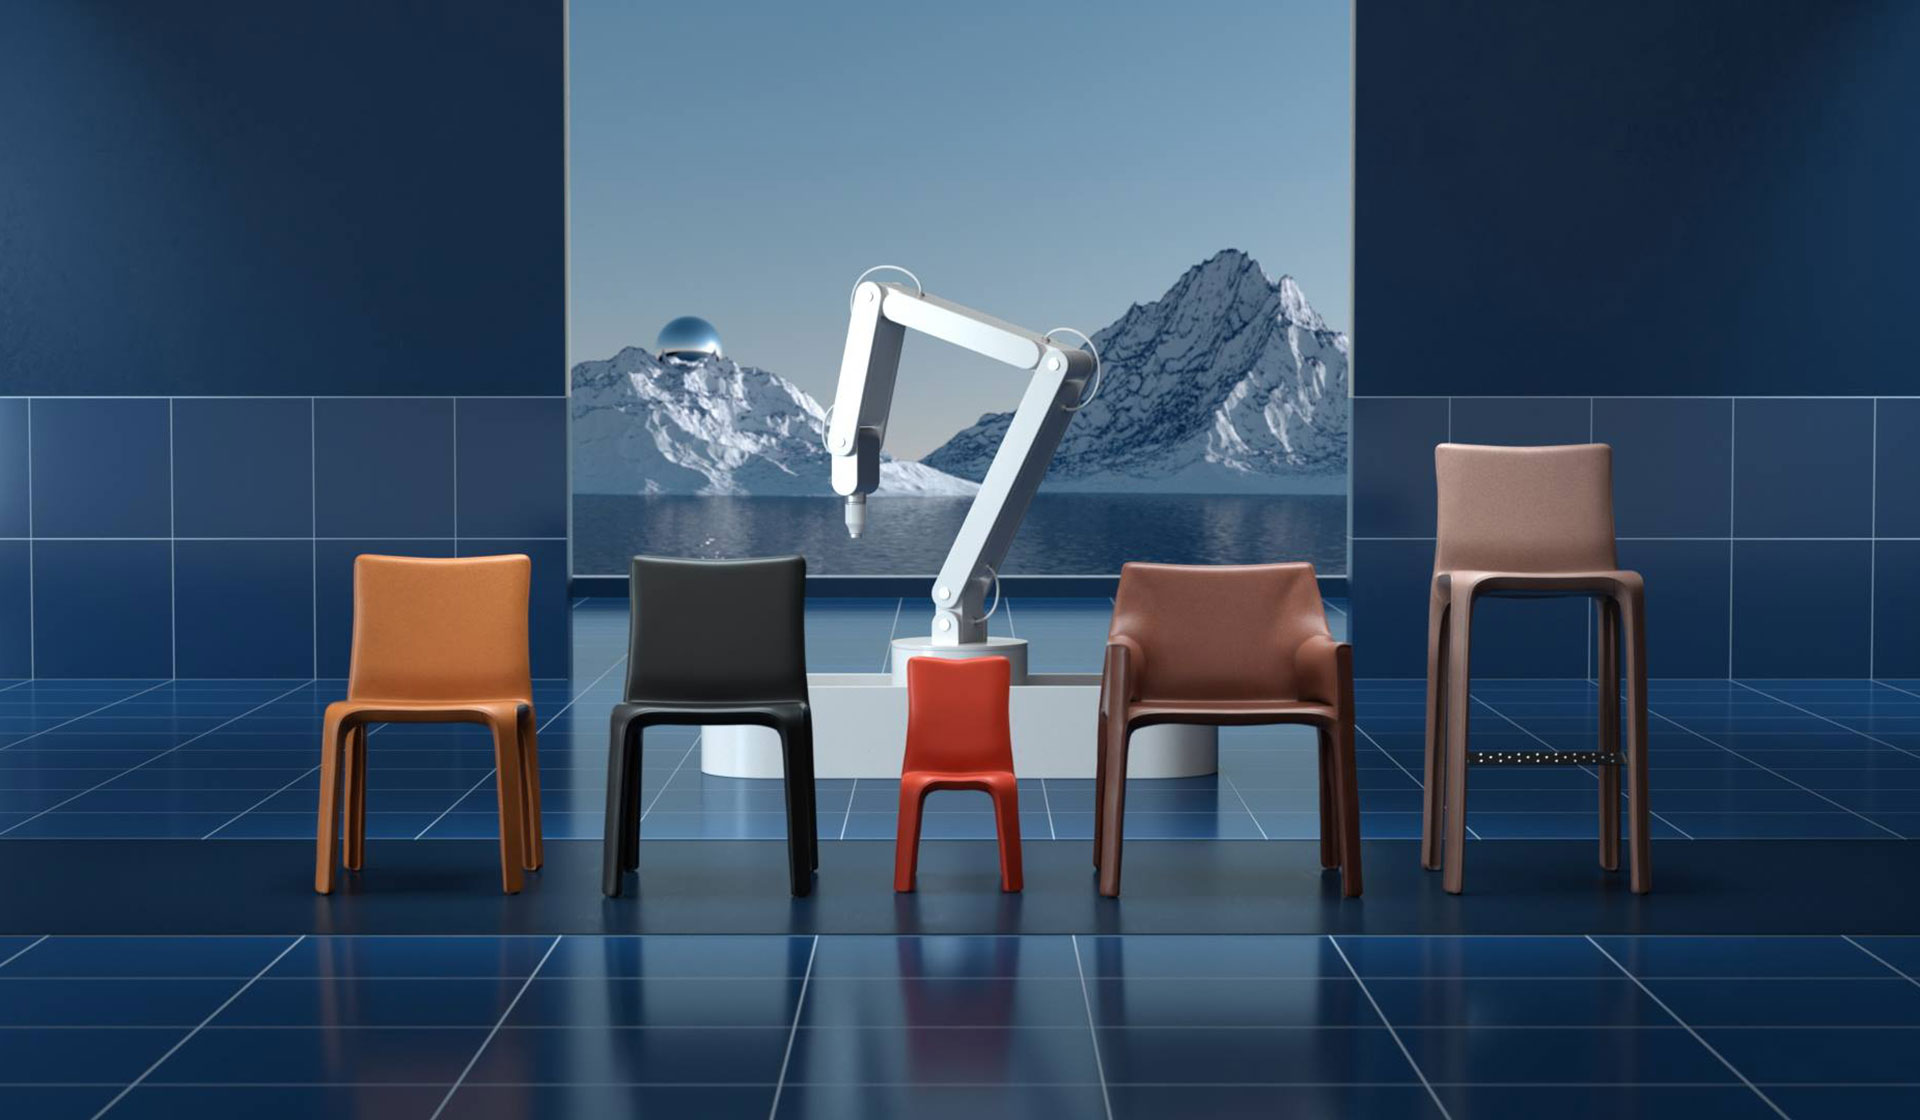 Cassina New Cab chairs designed by Mario Bellini